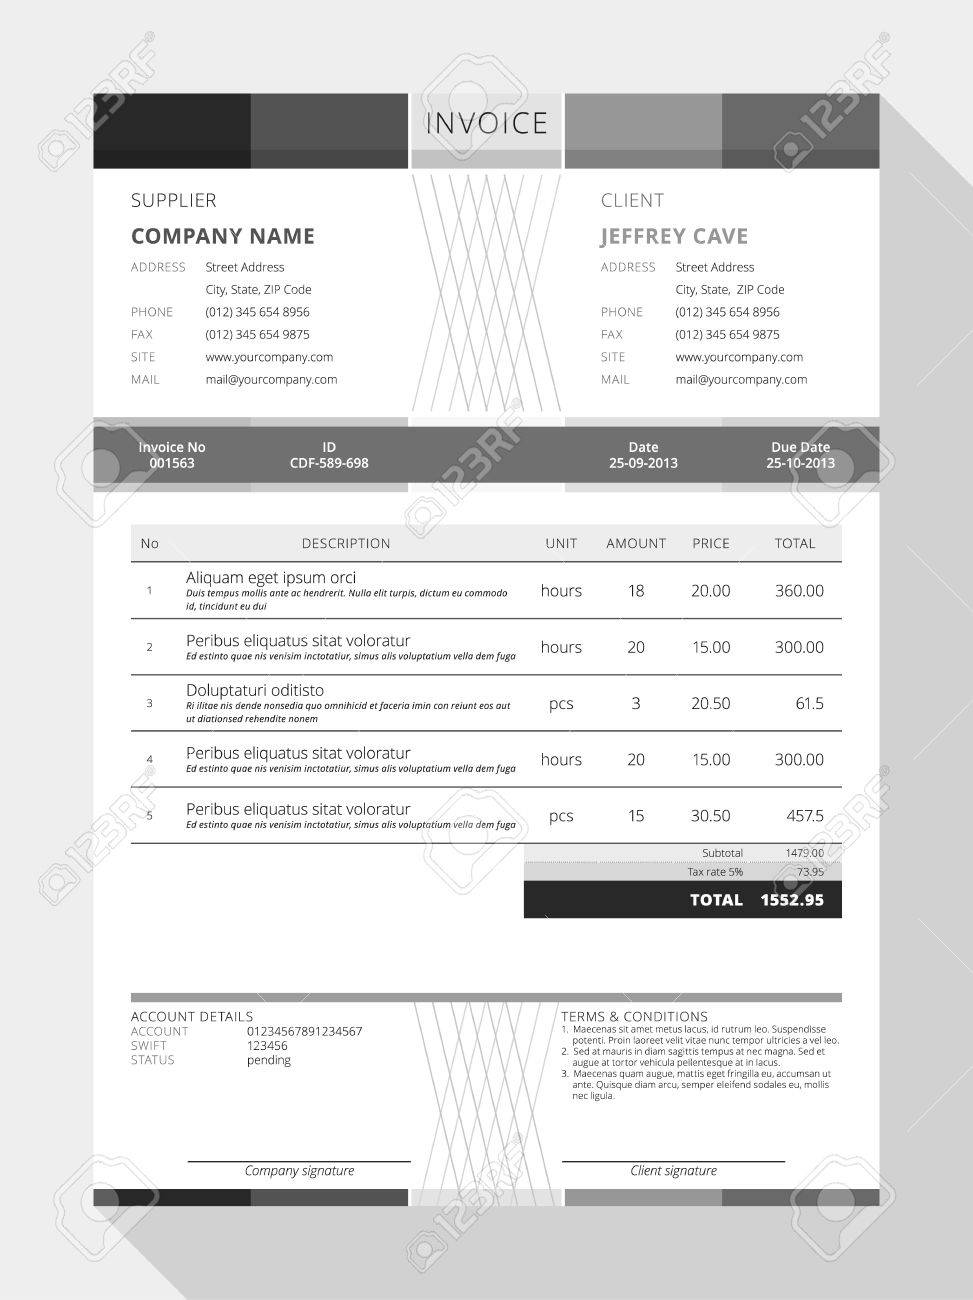 Picnictoimpeachus  Sweet Design An Invoice  Professional Graphic Design Invoice  With Likable Vector Customizable Invoice Form Template Design Vector   Design An Invoice With Endearing  Honda Civic Invoice Price Also Formal Invoice In Addition Express Invoice Mac And Modern Invoice Template As Well As What Is The Dealer Invoice Price Additionally Invoice App For Iphone From Happytomco With Picnictoimpeachus  Likable Design An Invoice  Professional Graphic Design Invoice  With Endearing Vector Customizable Invoice Form Template Design Vector   Design An Invoice And Sweet  Honda Civic Invoice Price Also Formal Invoice In Addition Express Invoice Mac From Happytomco